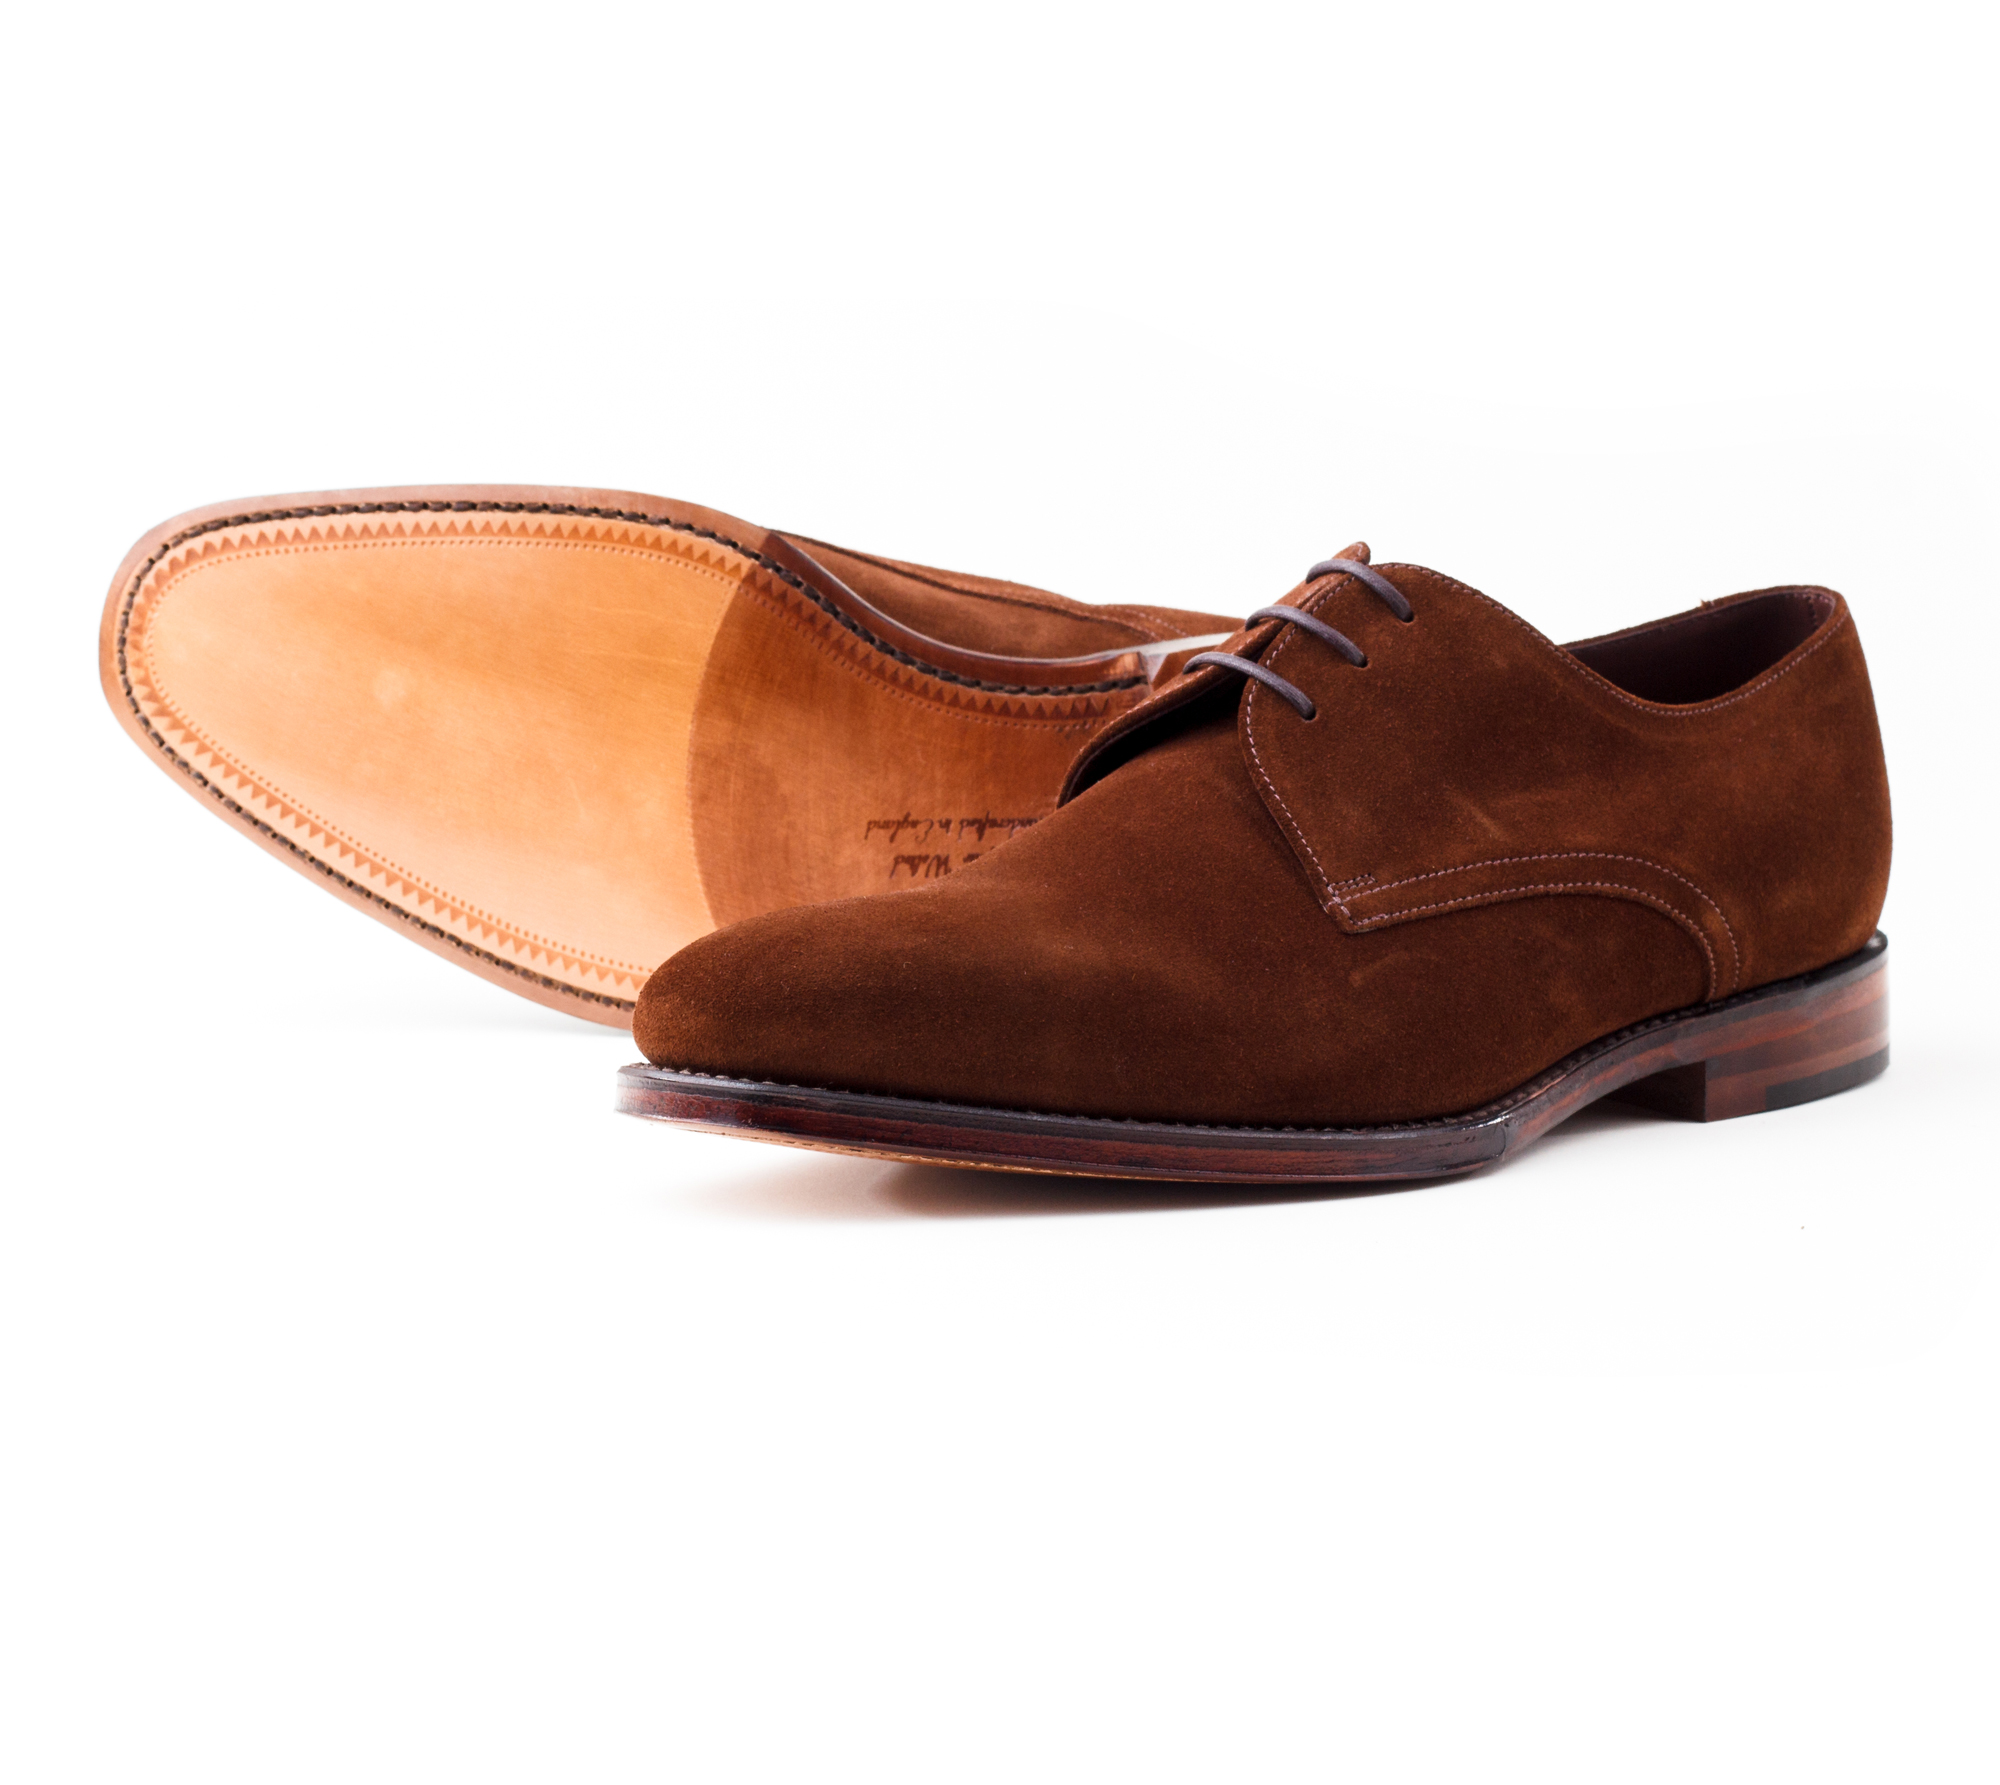 фото Дерби Loake, Downing Brown suede от магазина MENSHOES